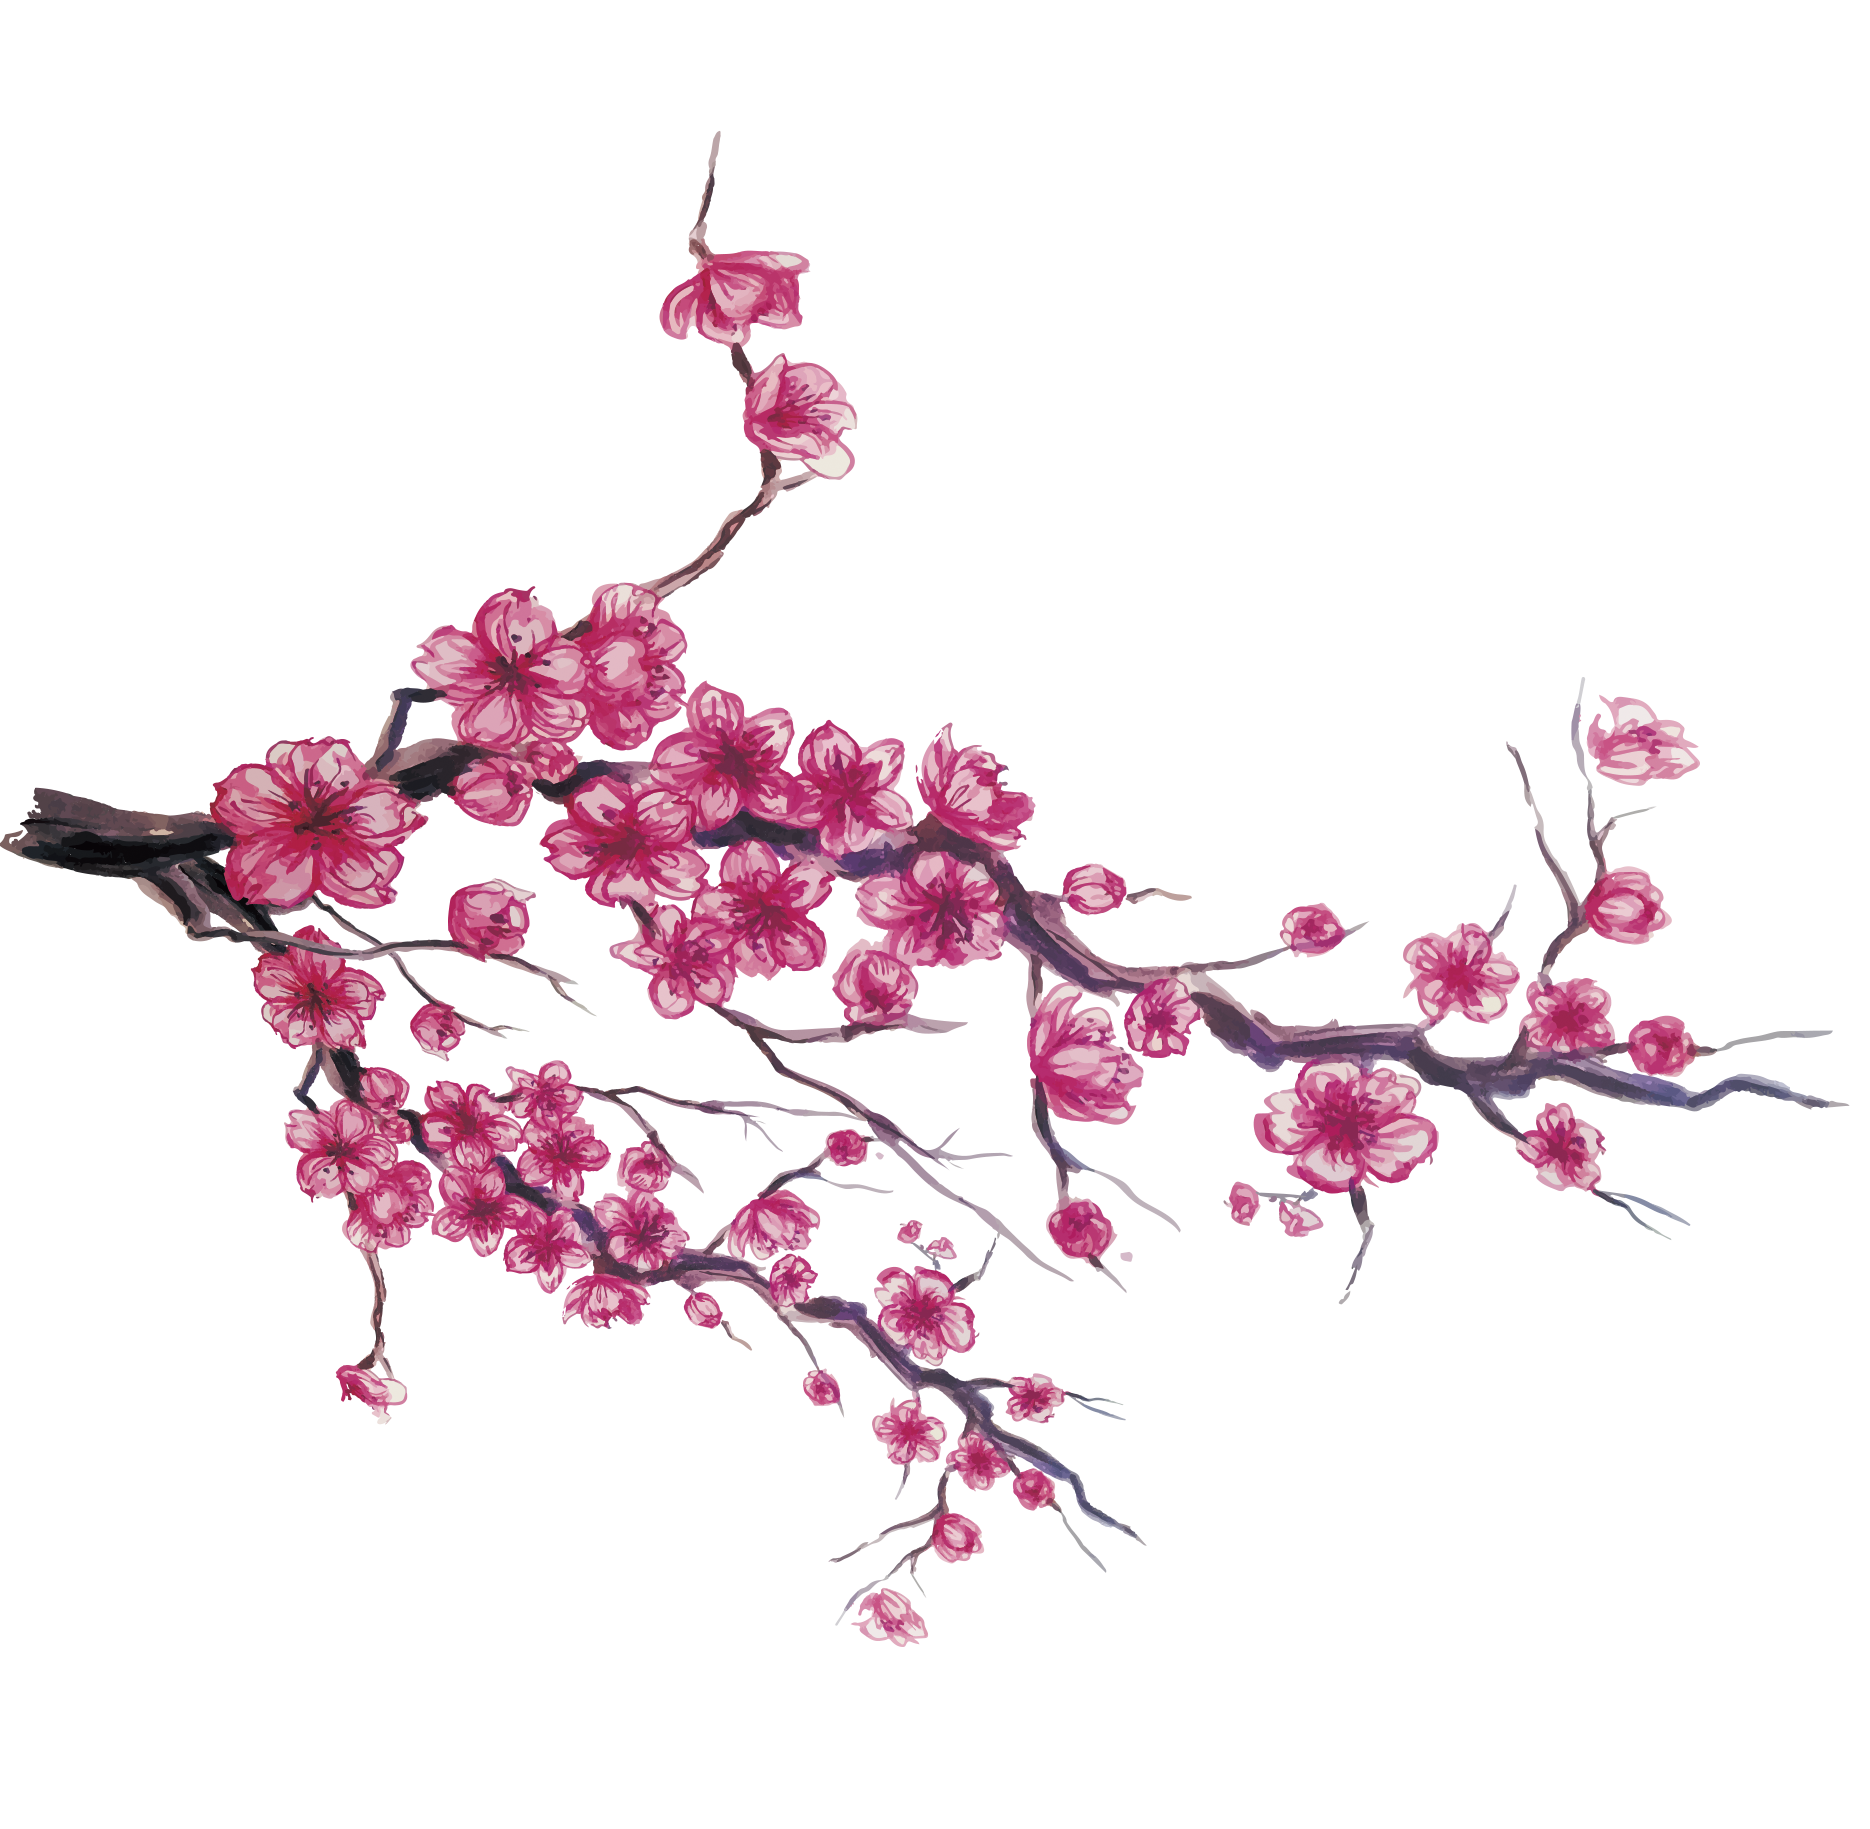 Bud drawing cherry blossom. Japan download hand painted